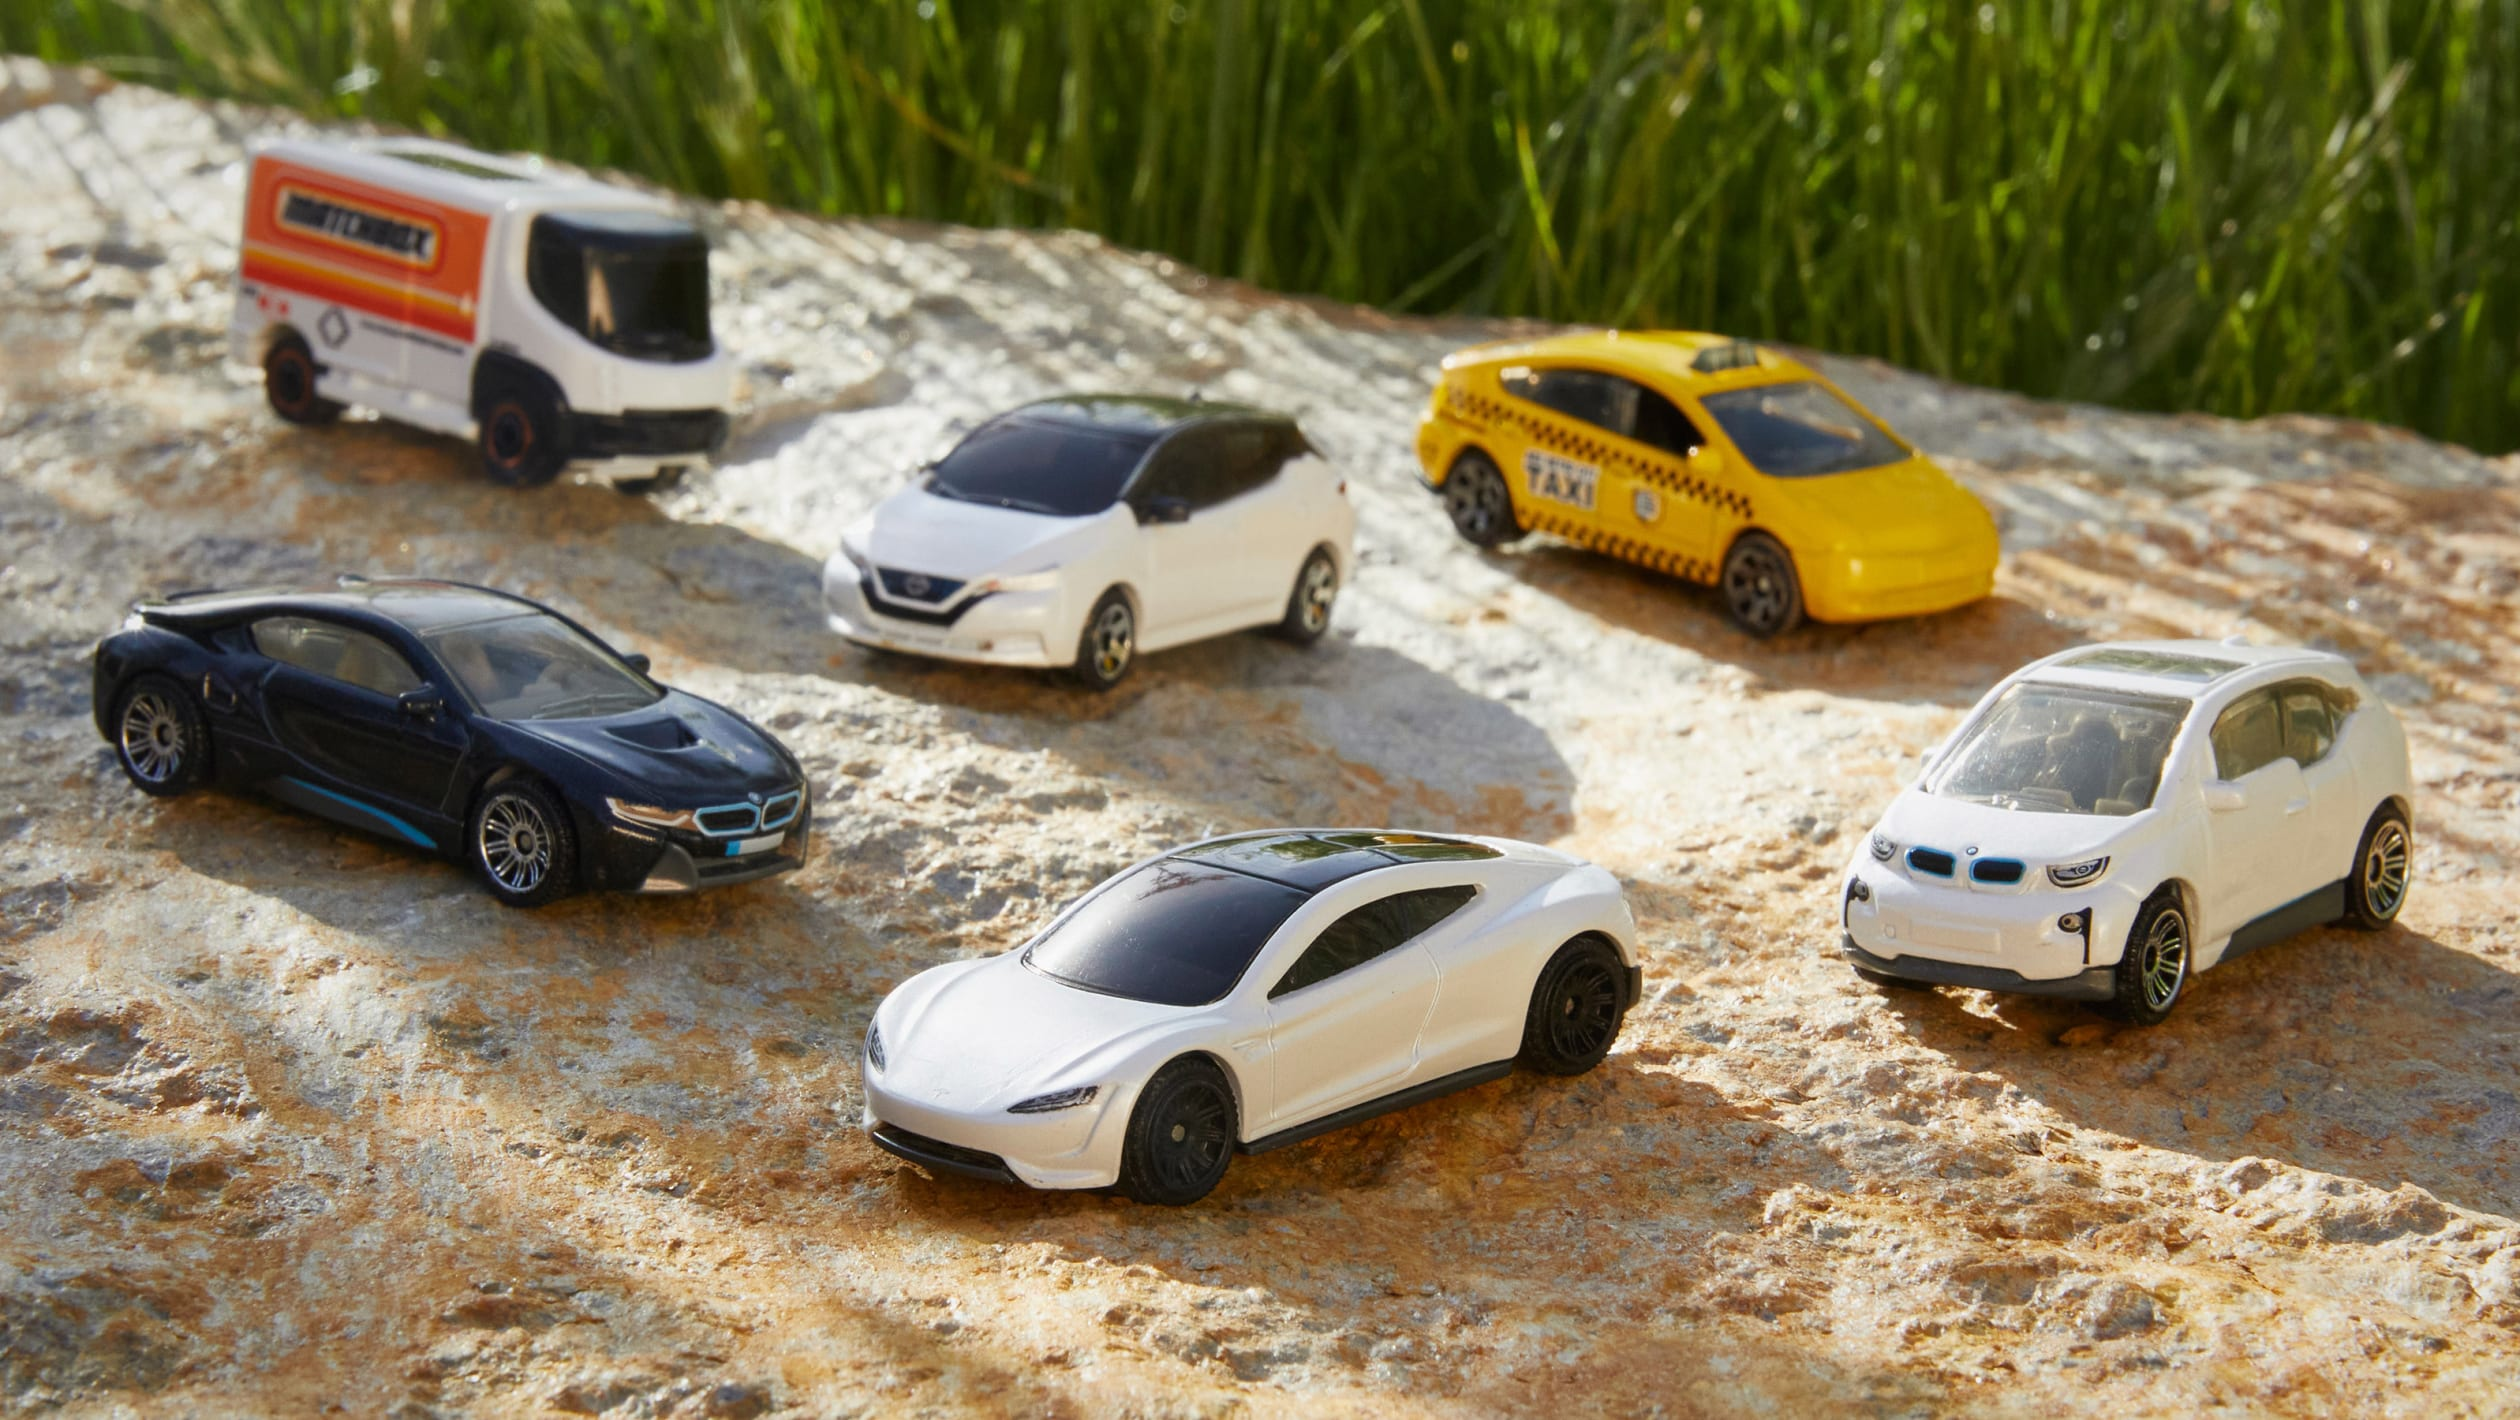 Matchbox, evs, ev, cars, future, mobility,